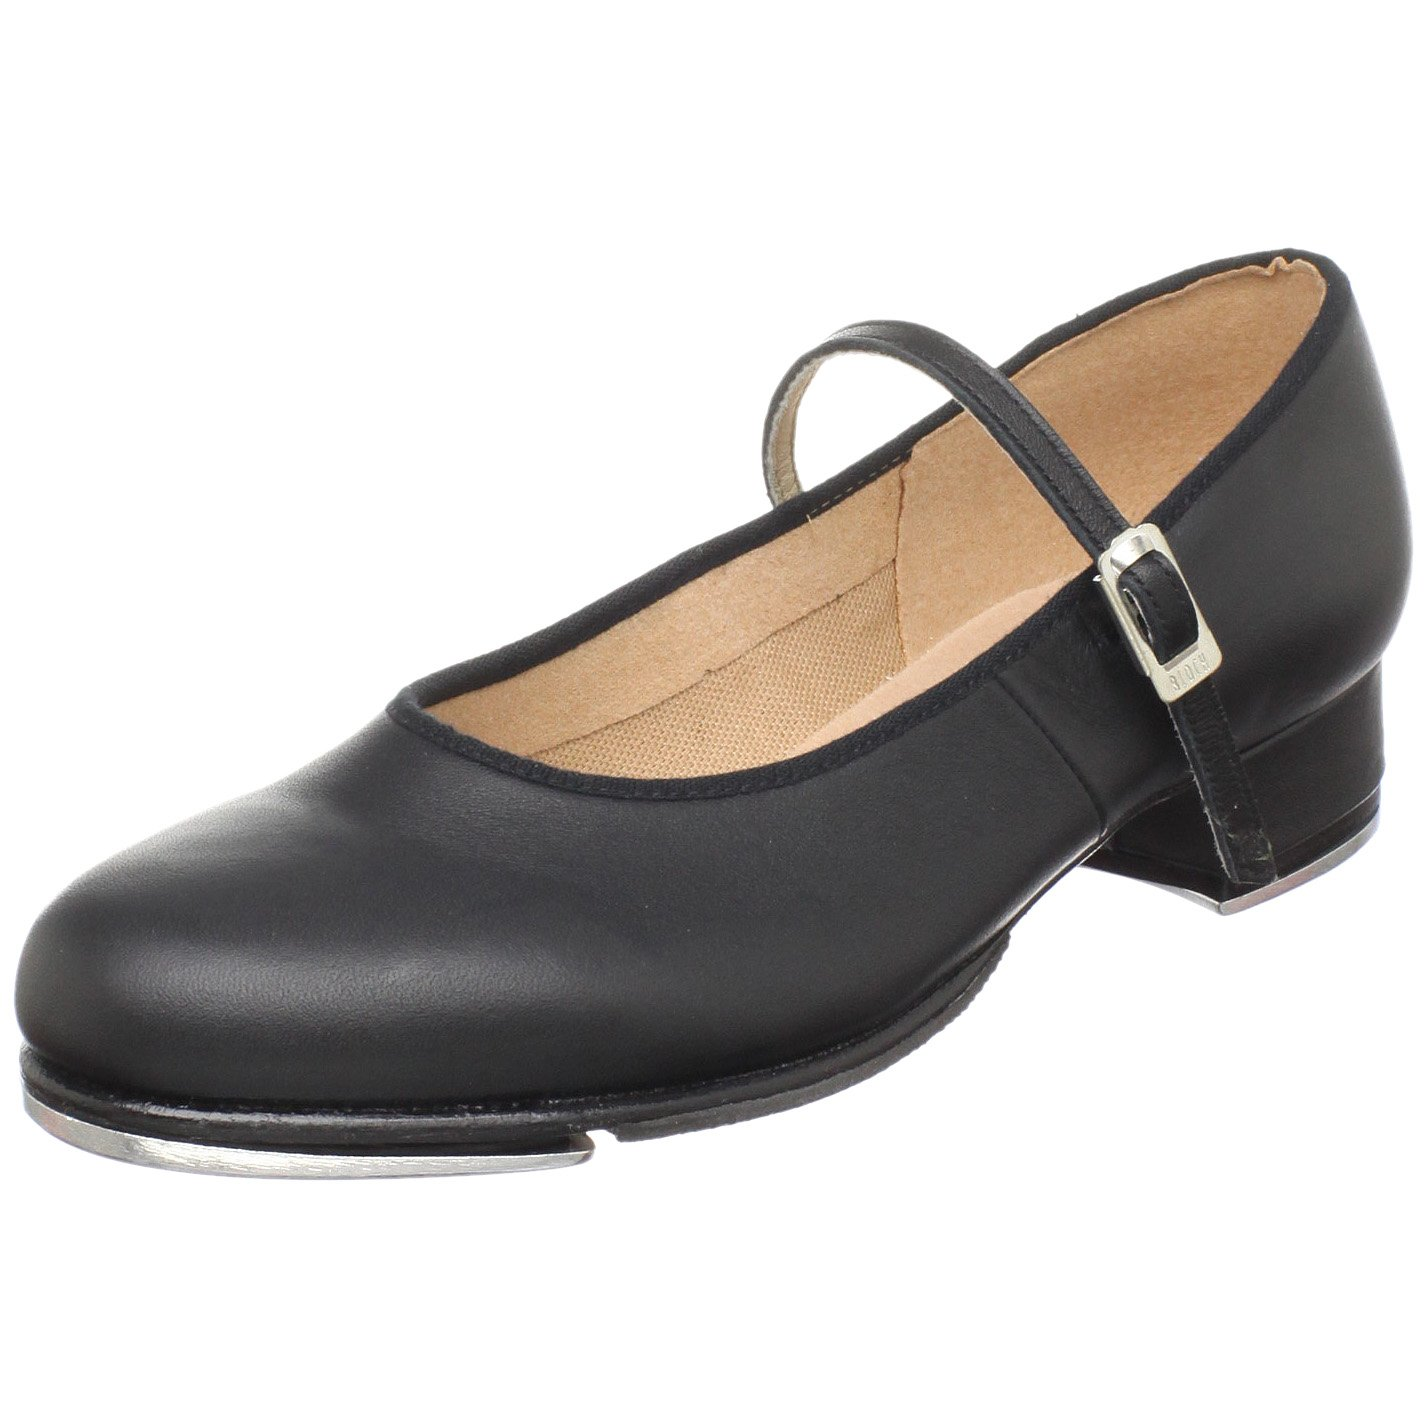 Bloch Women's Tap On Tap Shoe,Black,11.5 M US